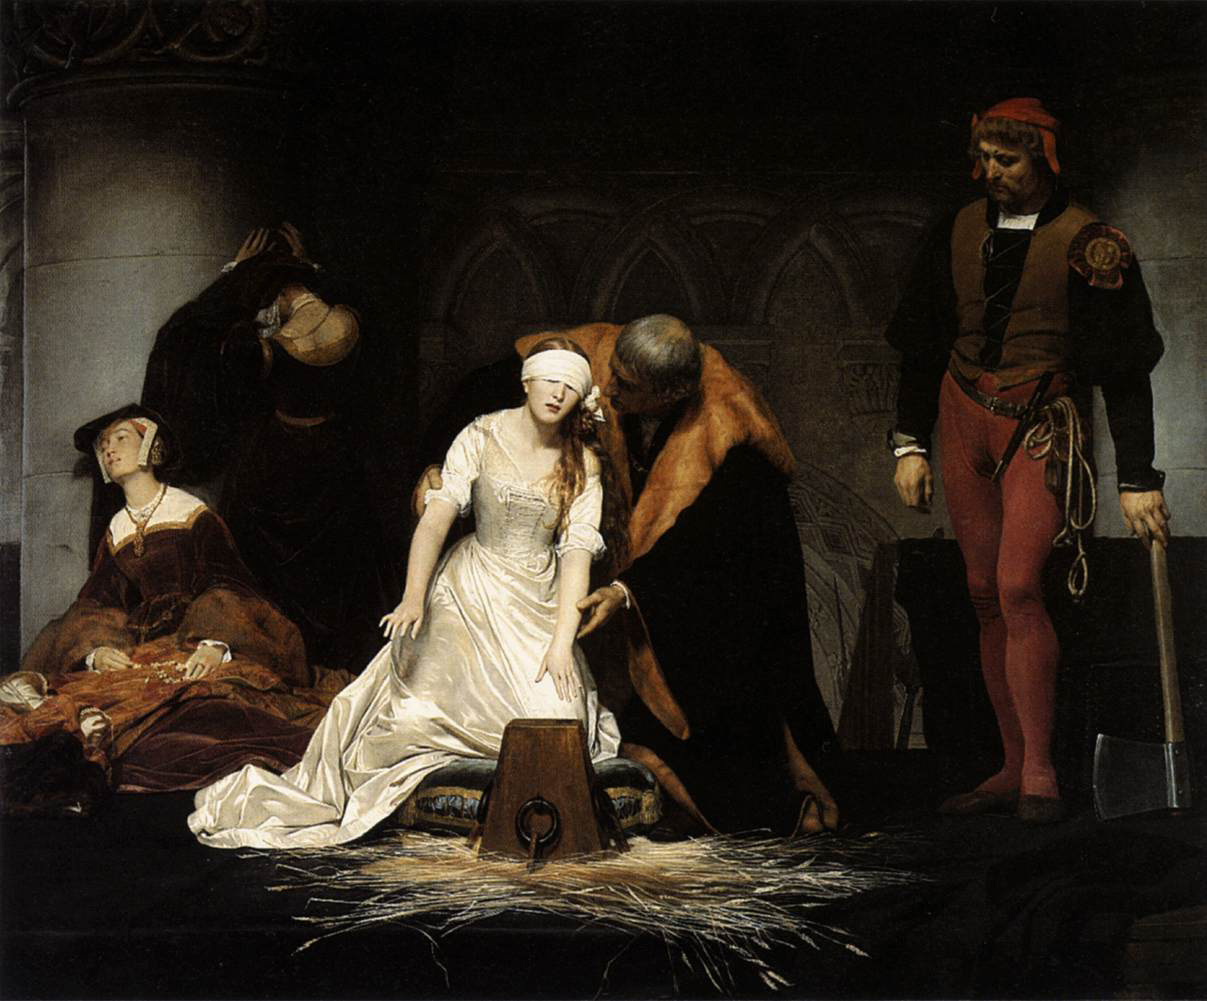 egzekucja Jane Grey, Delaroche, execution of Lady Jane Gray